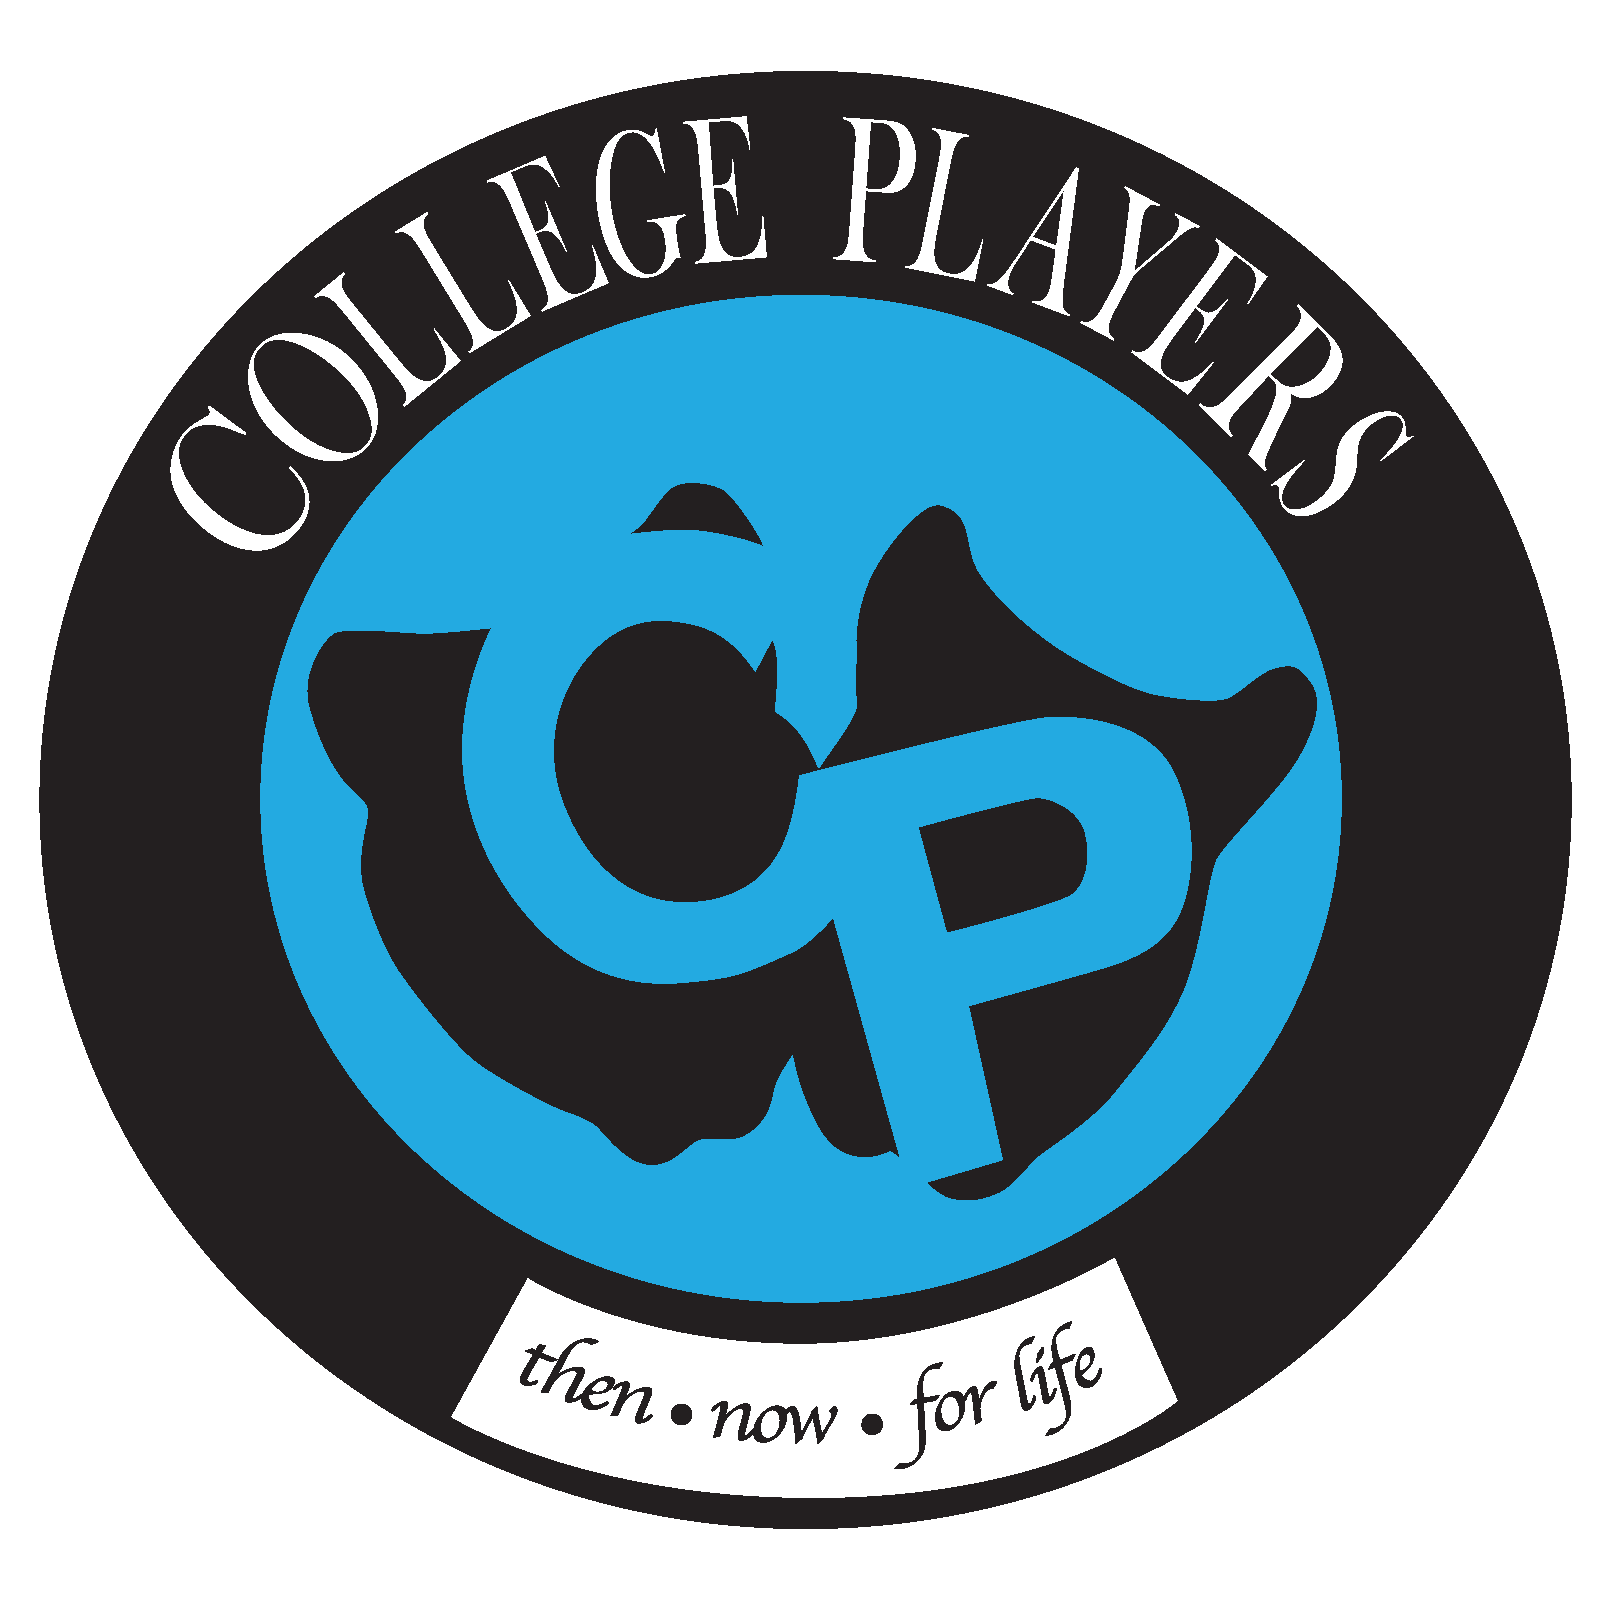 College Players (CP)